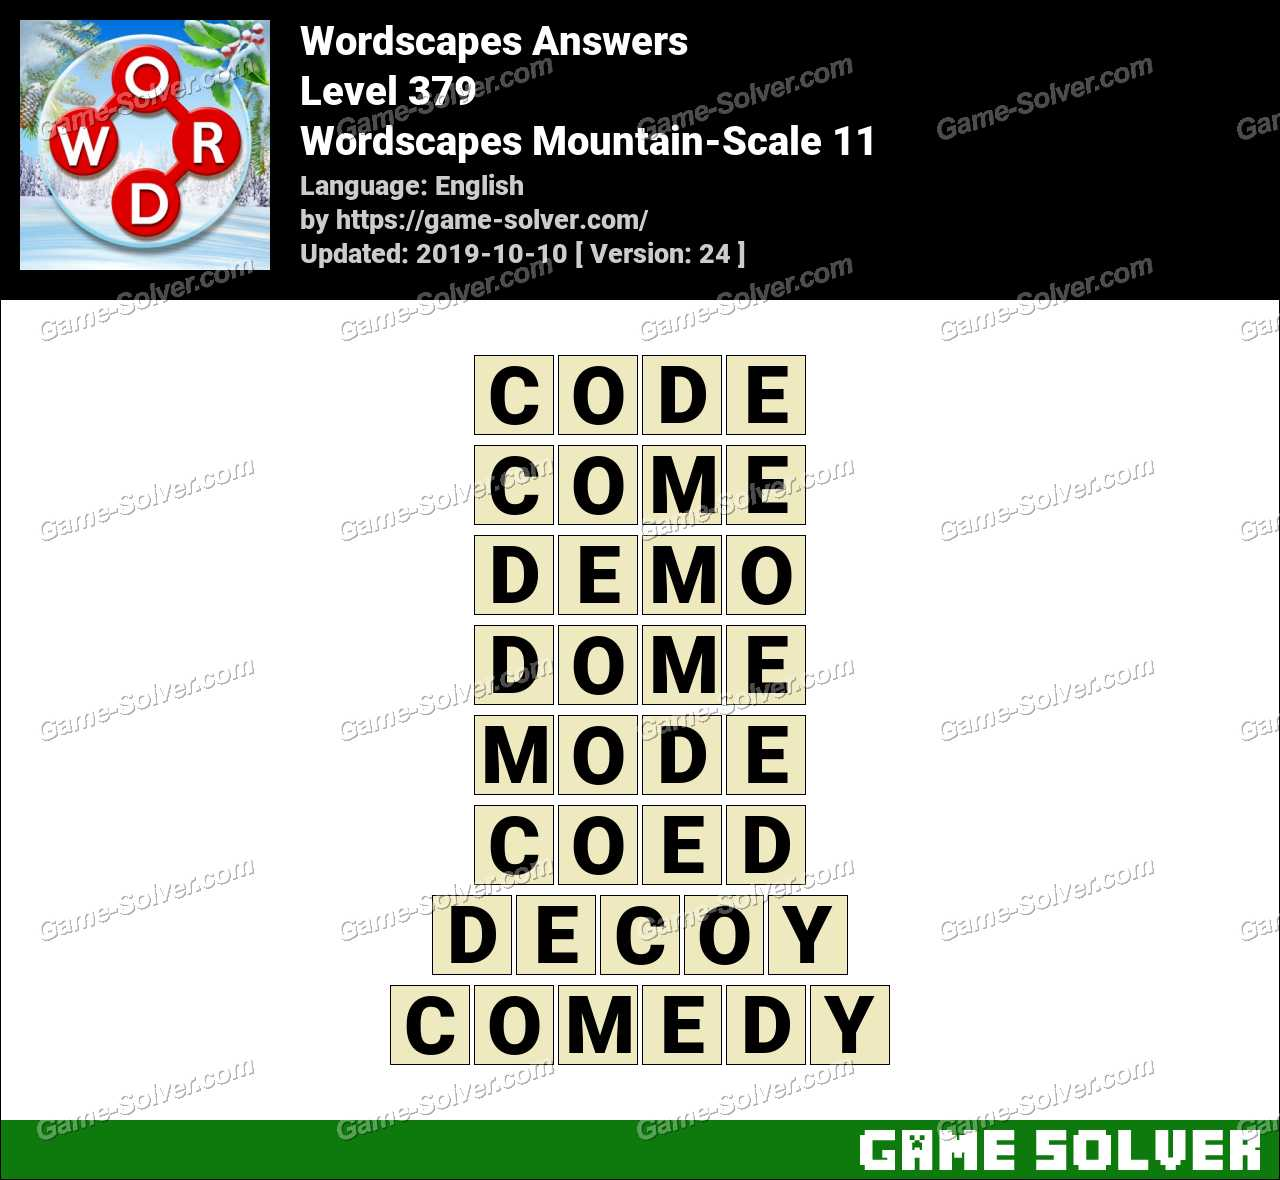 Wordscapes Mountain-Scale 11 Answers